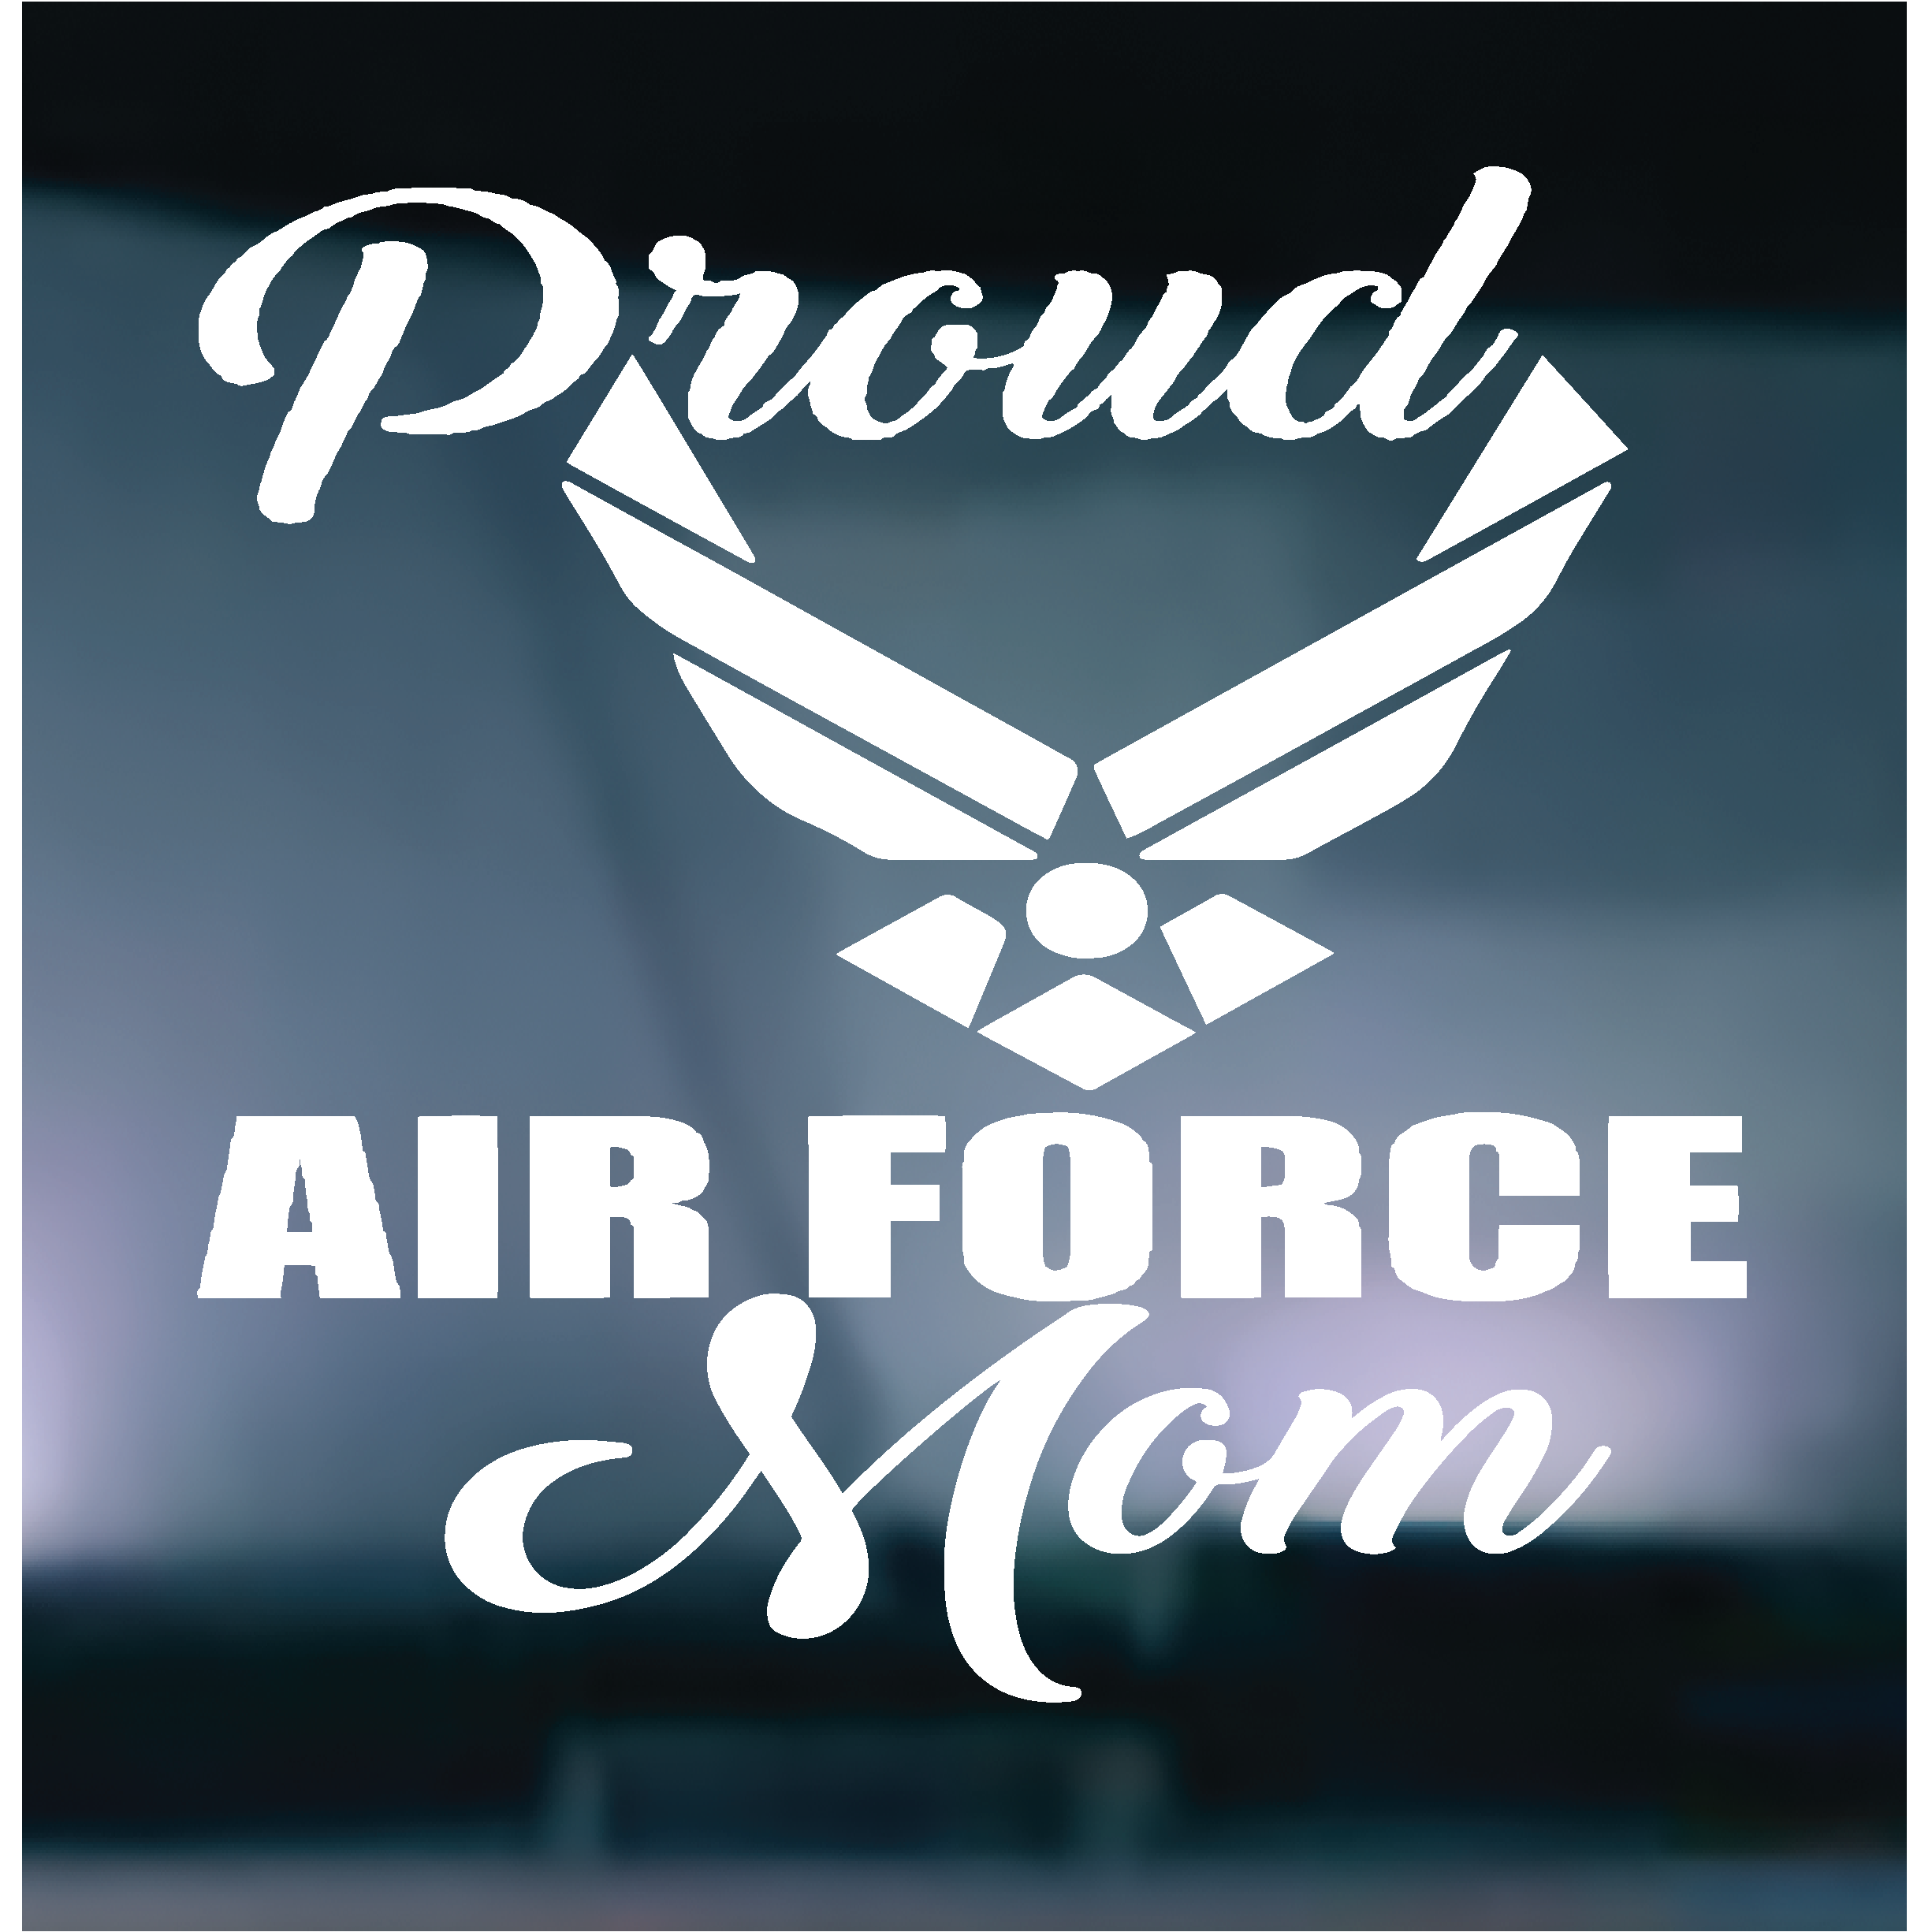 Proud Air Force Mom Vinyl Graphic Decal Air force mom